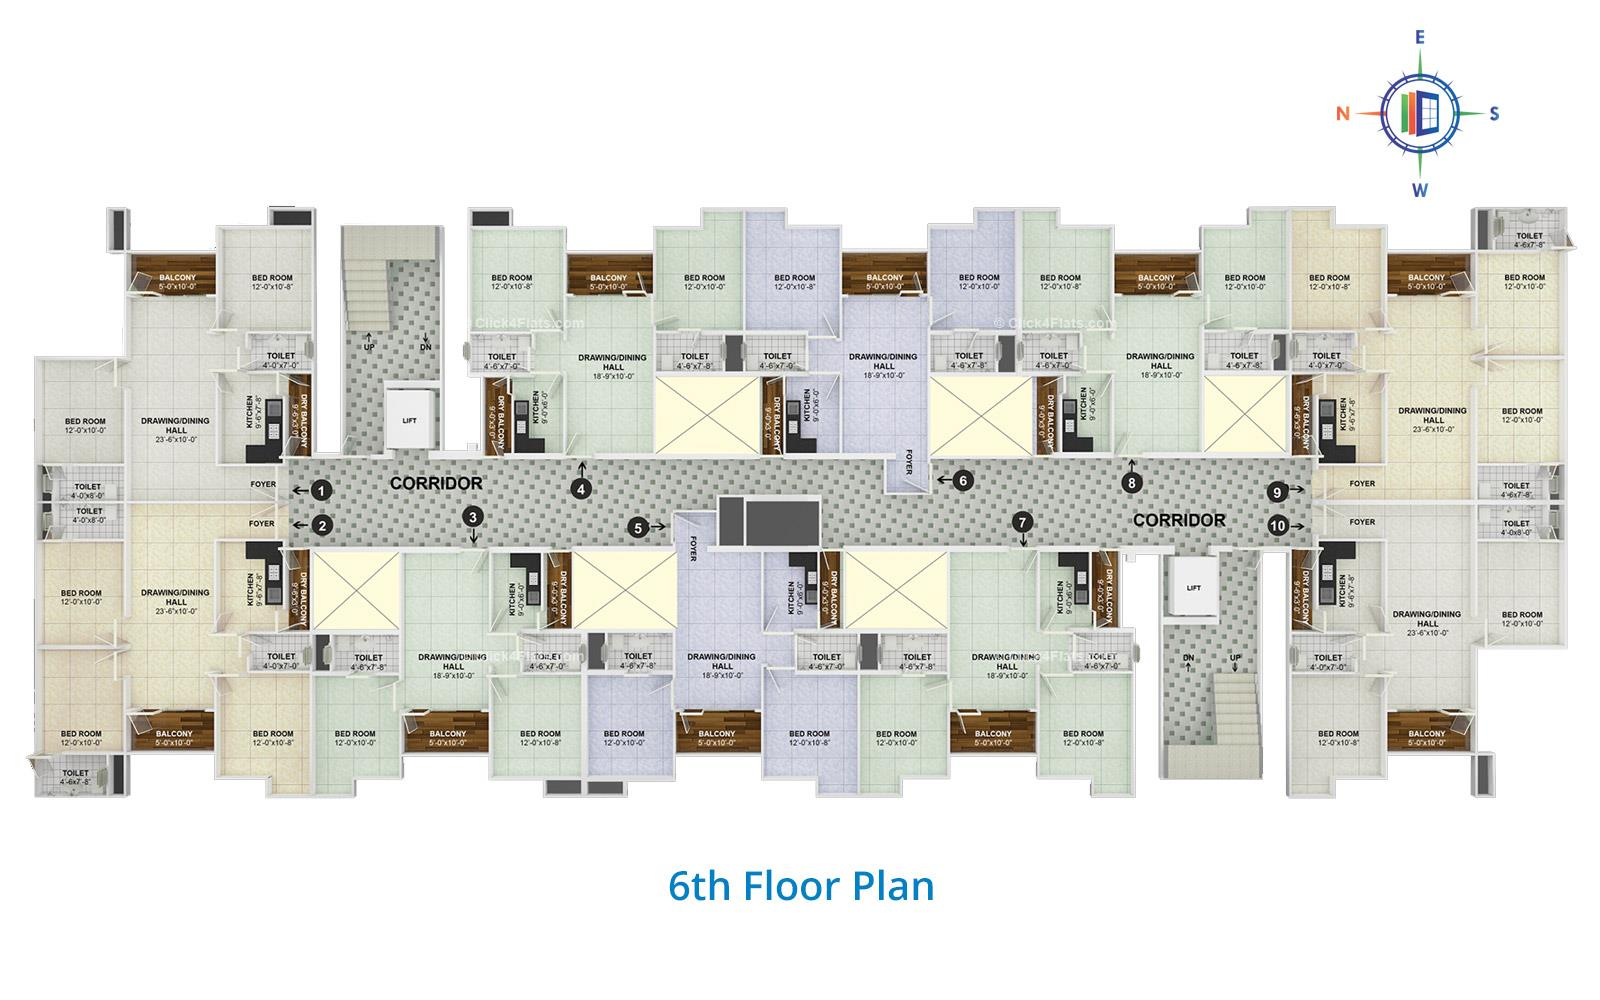 The Trump 6th Floor Plan